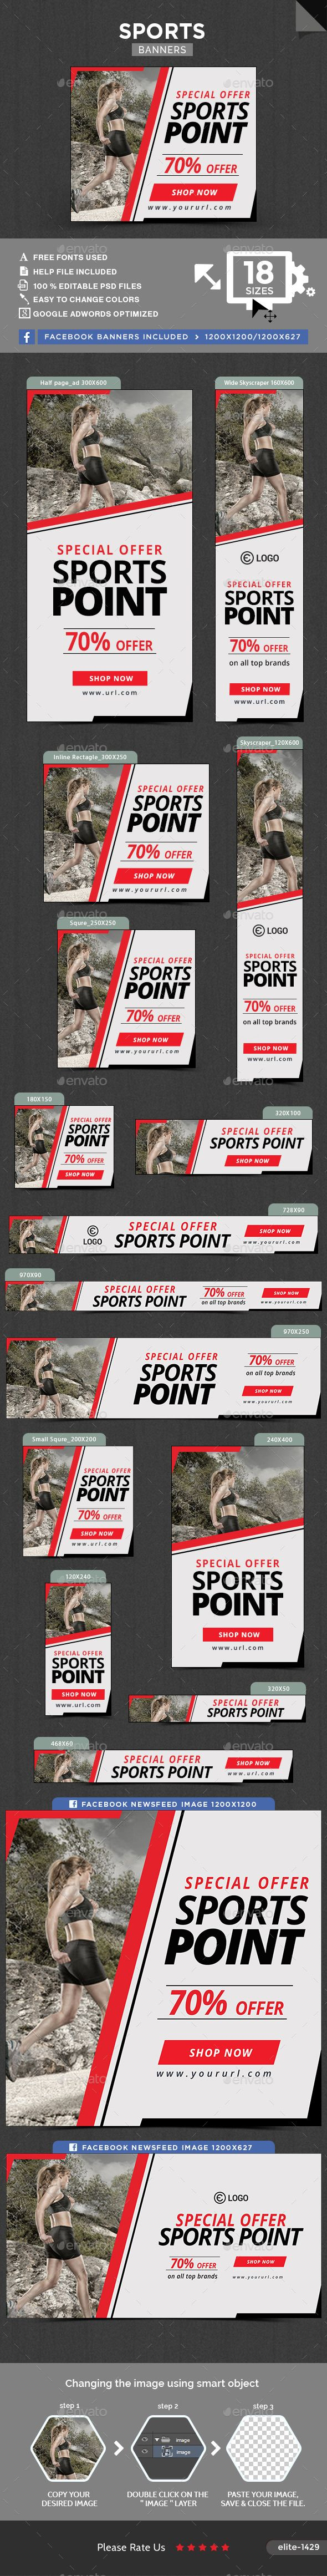 Sports Banners — Photoshop PSD #business #banner pack • Available here → https://graphicriver.net/item/sports-banners/15930049?ref=pxcr